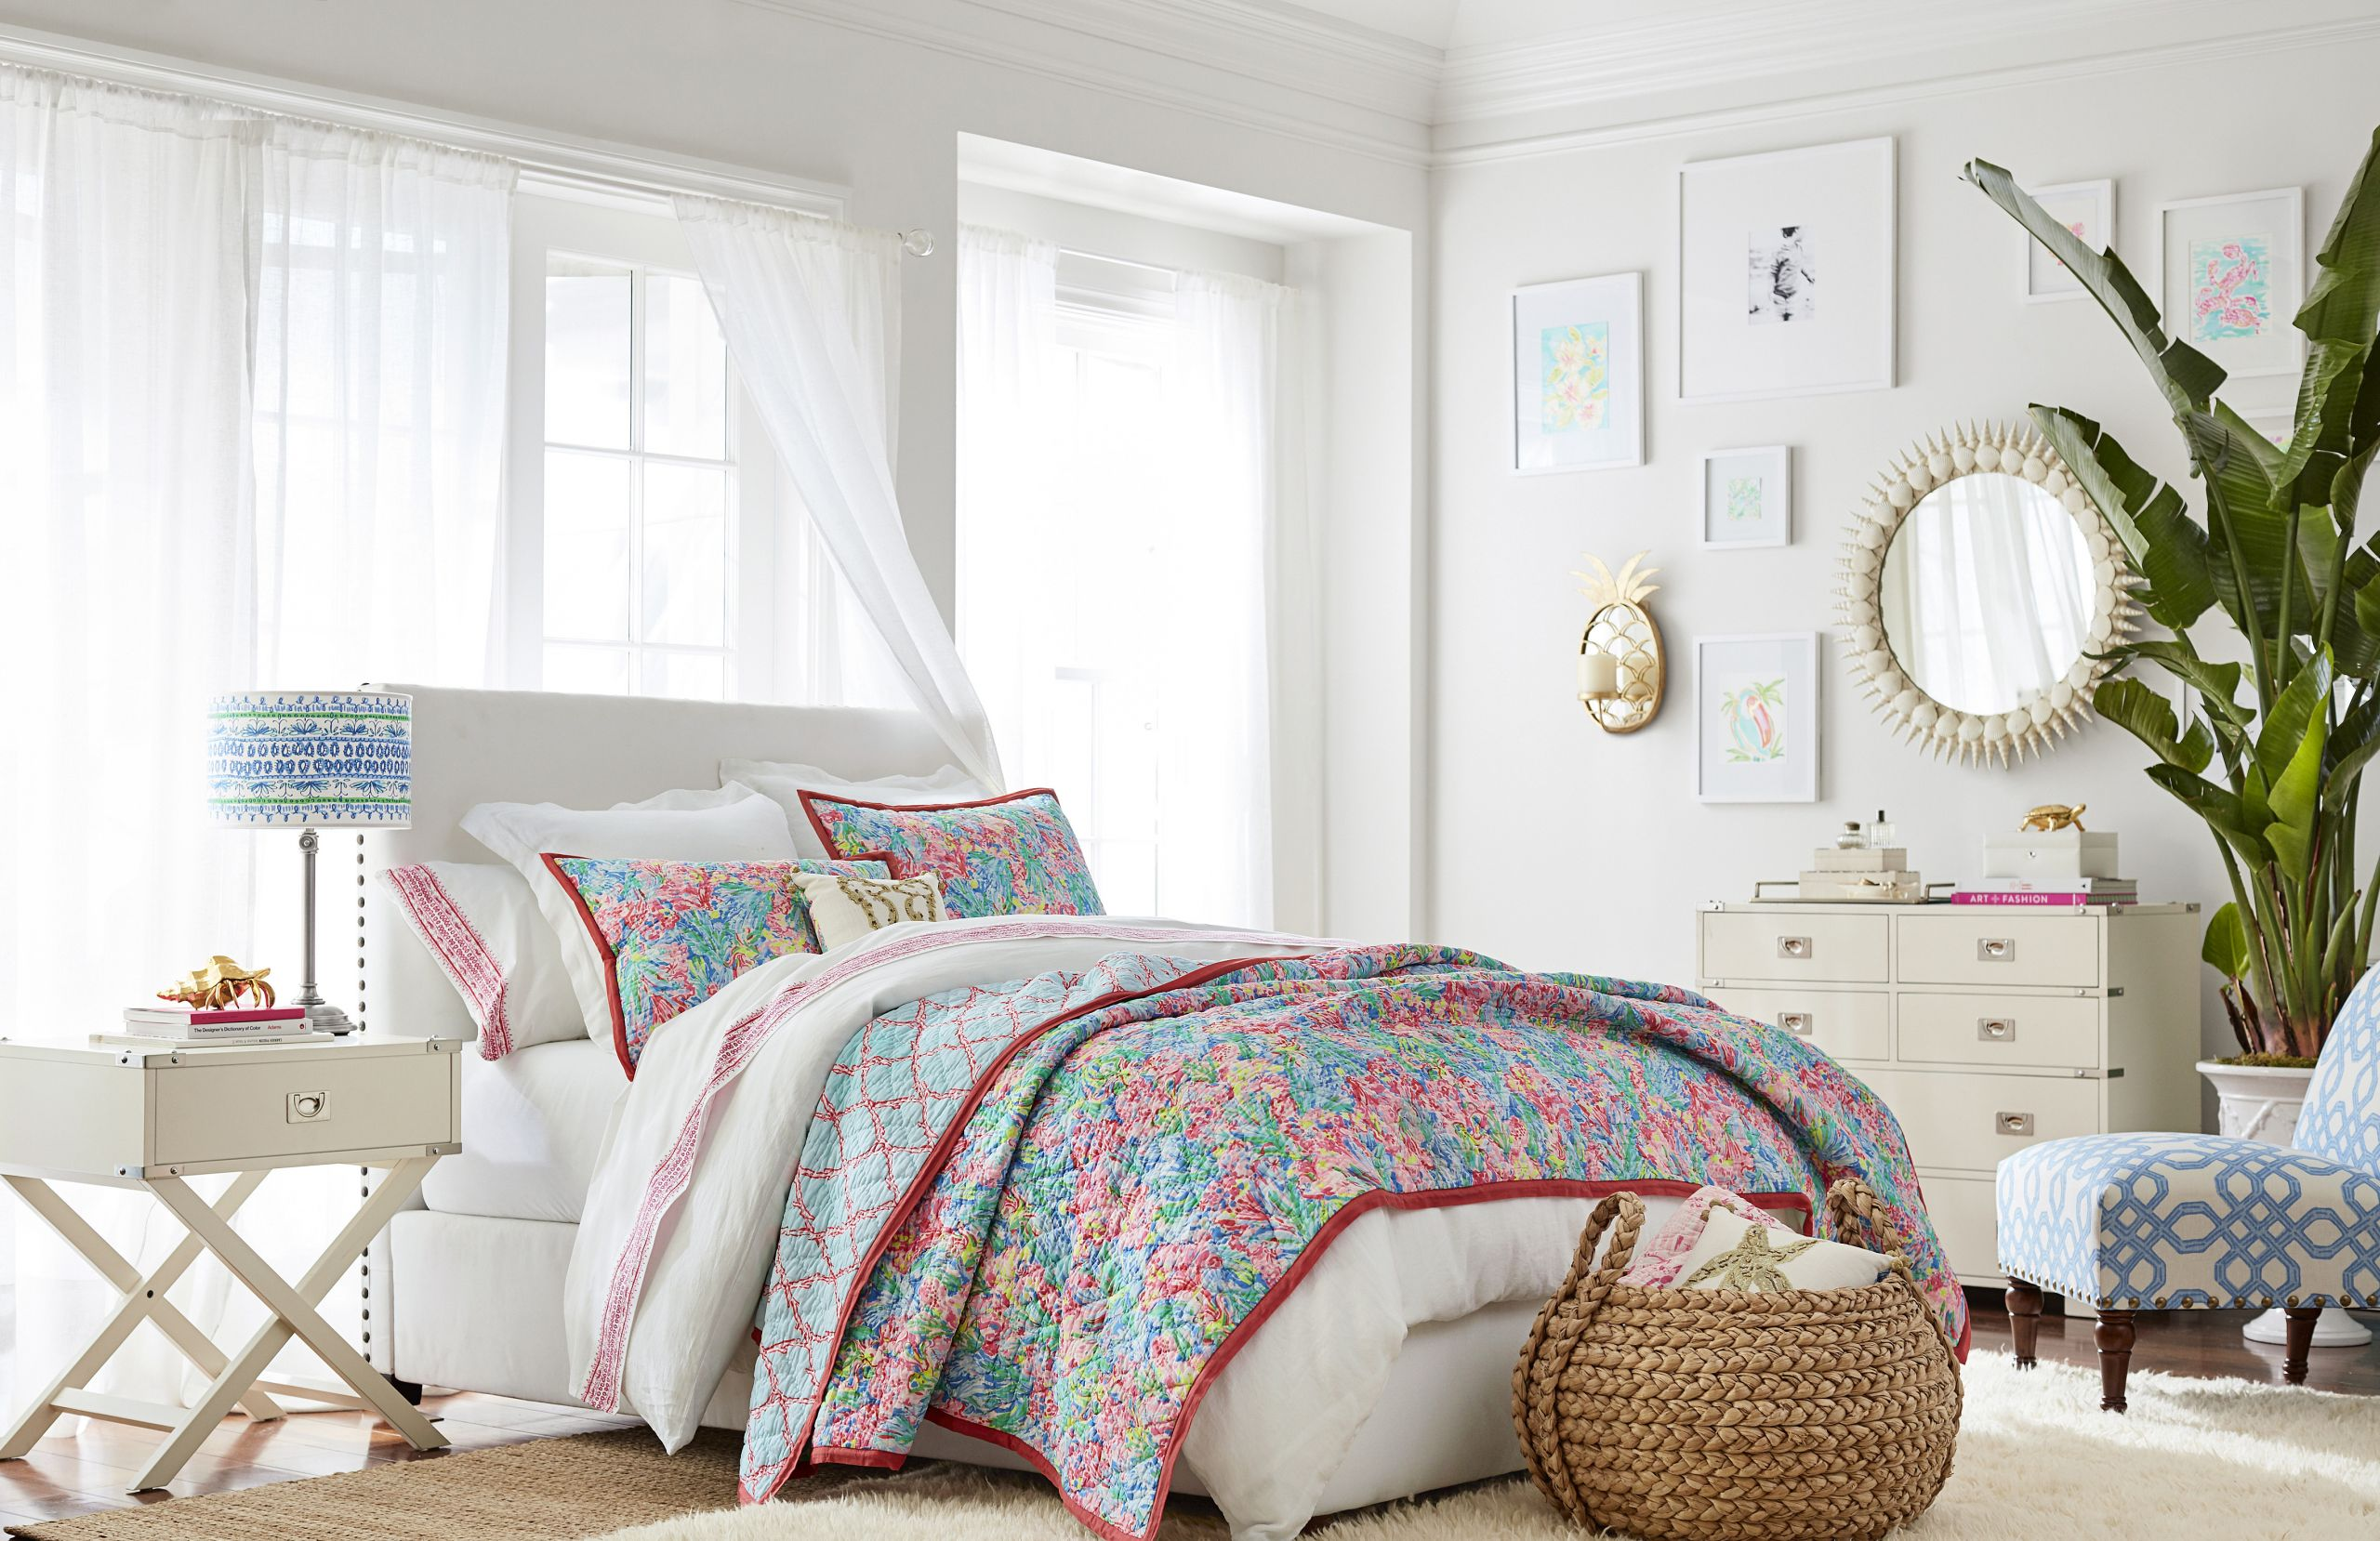 Pottery Barn Kids Decor  Pottery Barn and Lilly Pulitzer Home Decor Collection